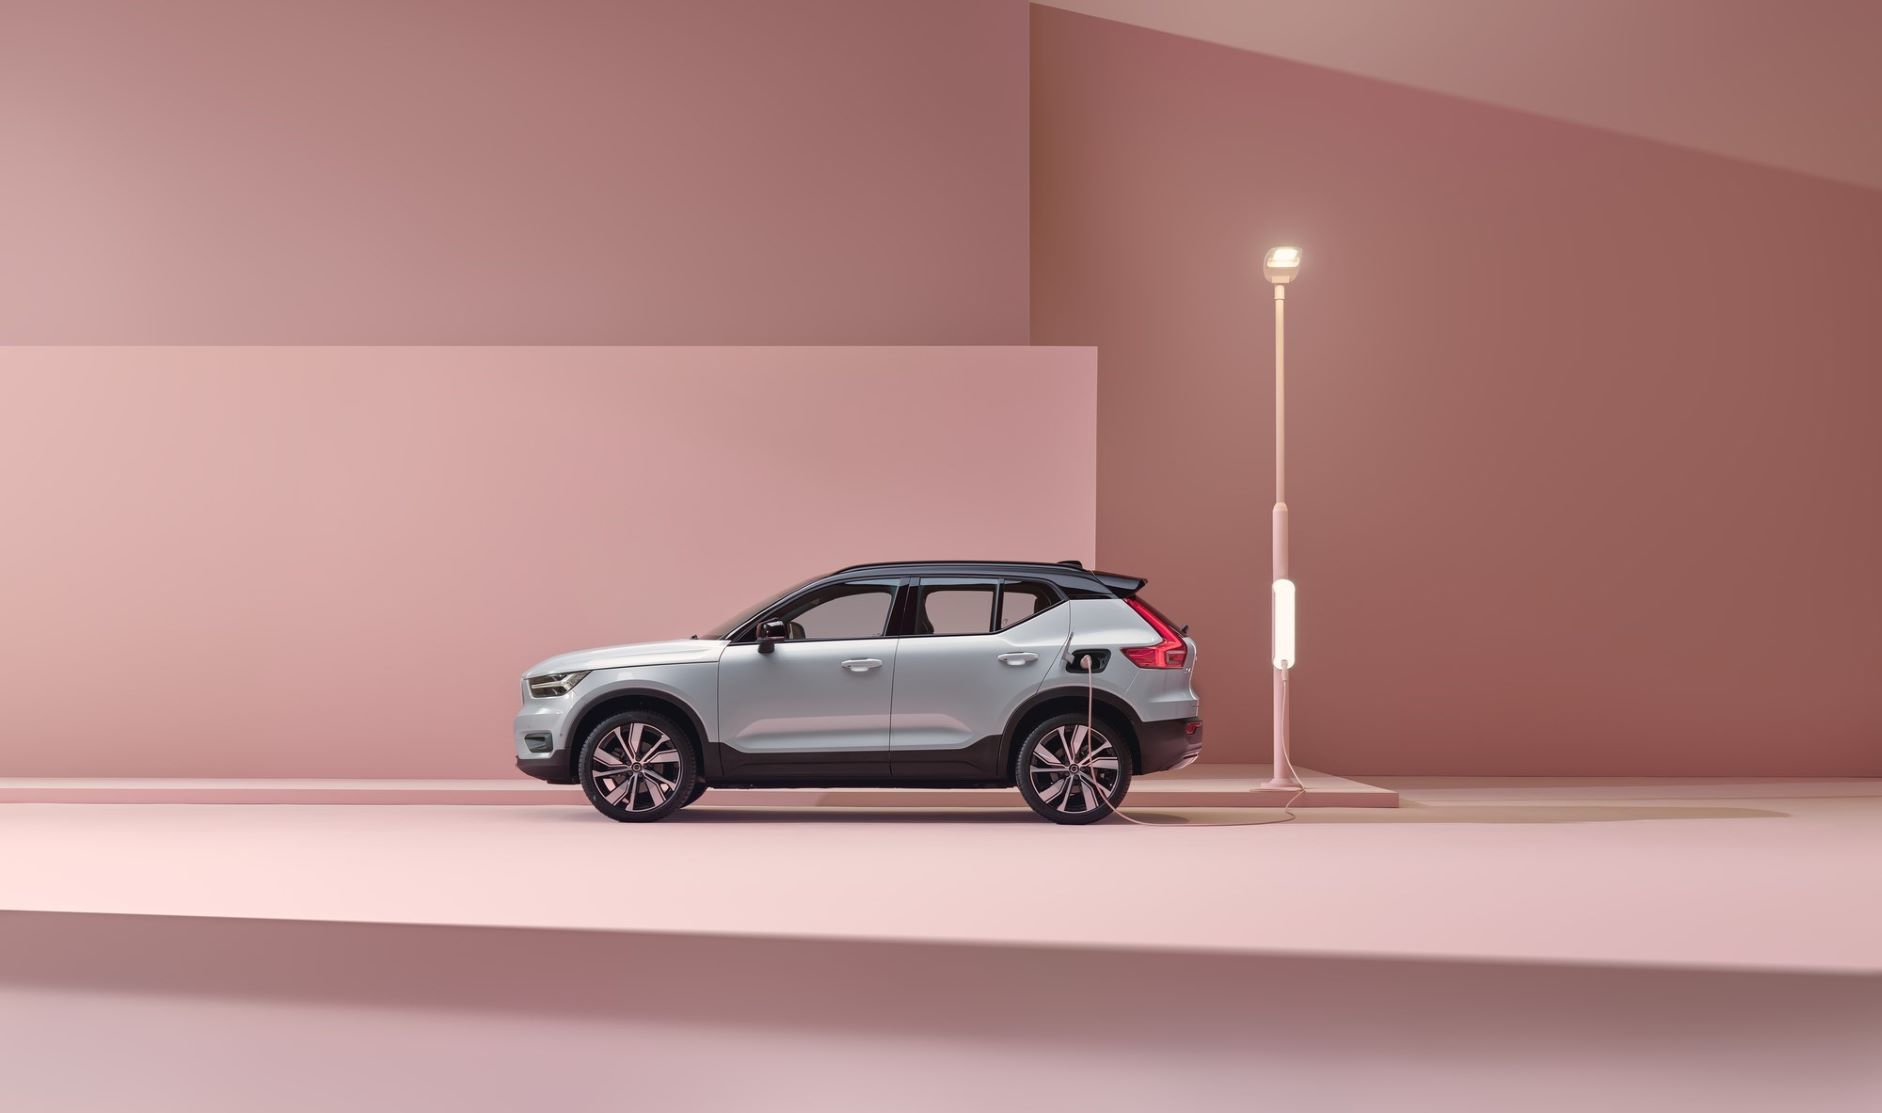 Side view of the Volvo XC40 Recharge